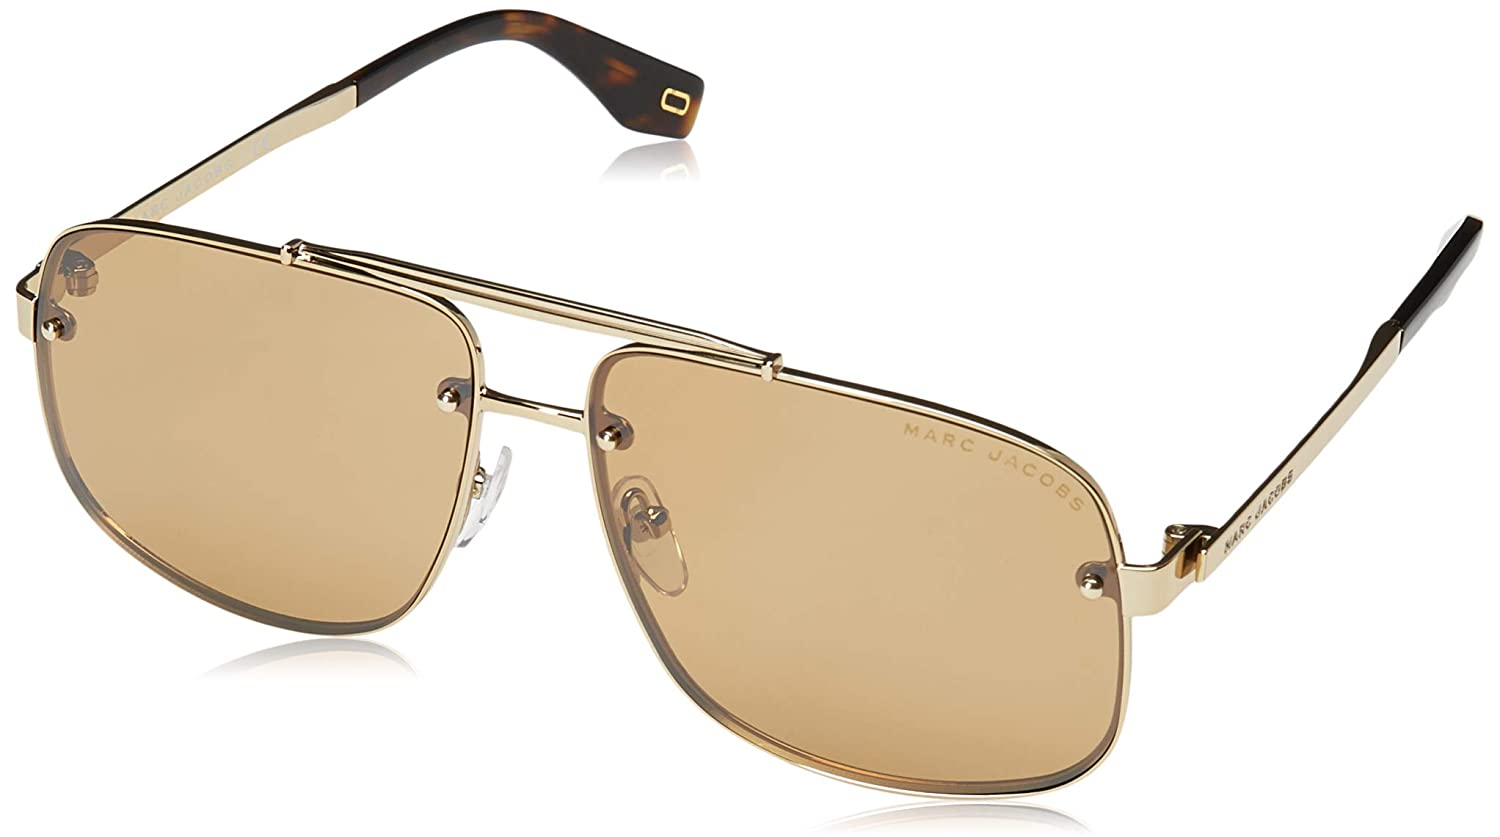 4006cbb6cf Amazon.com  Marc Jacobs Women s Marc 318 S Gold Silver Mirror One Size   Clothing